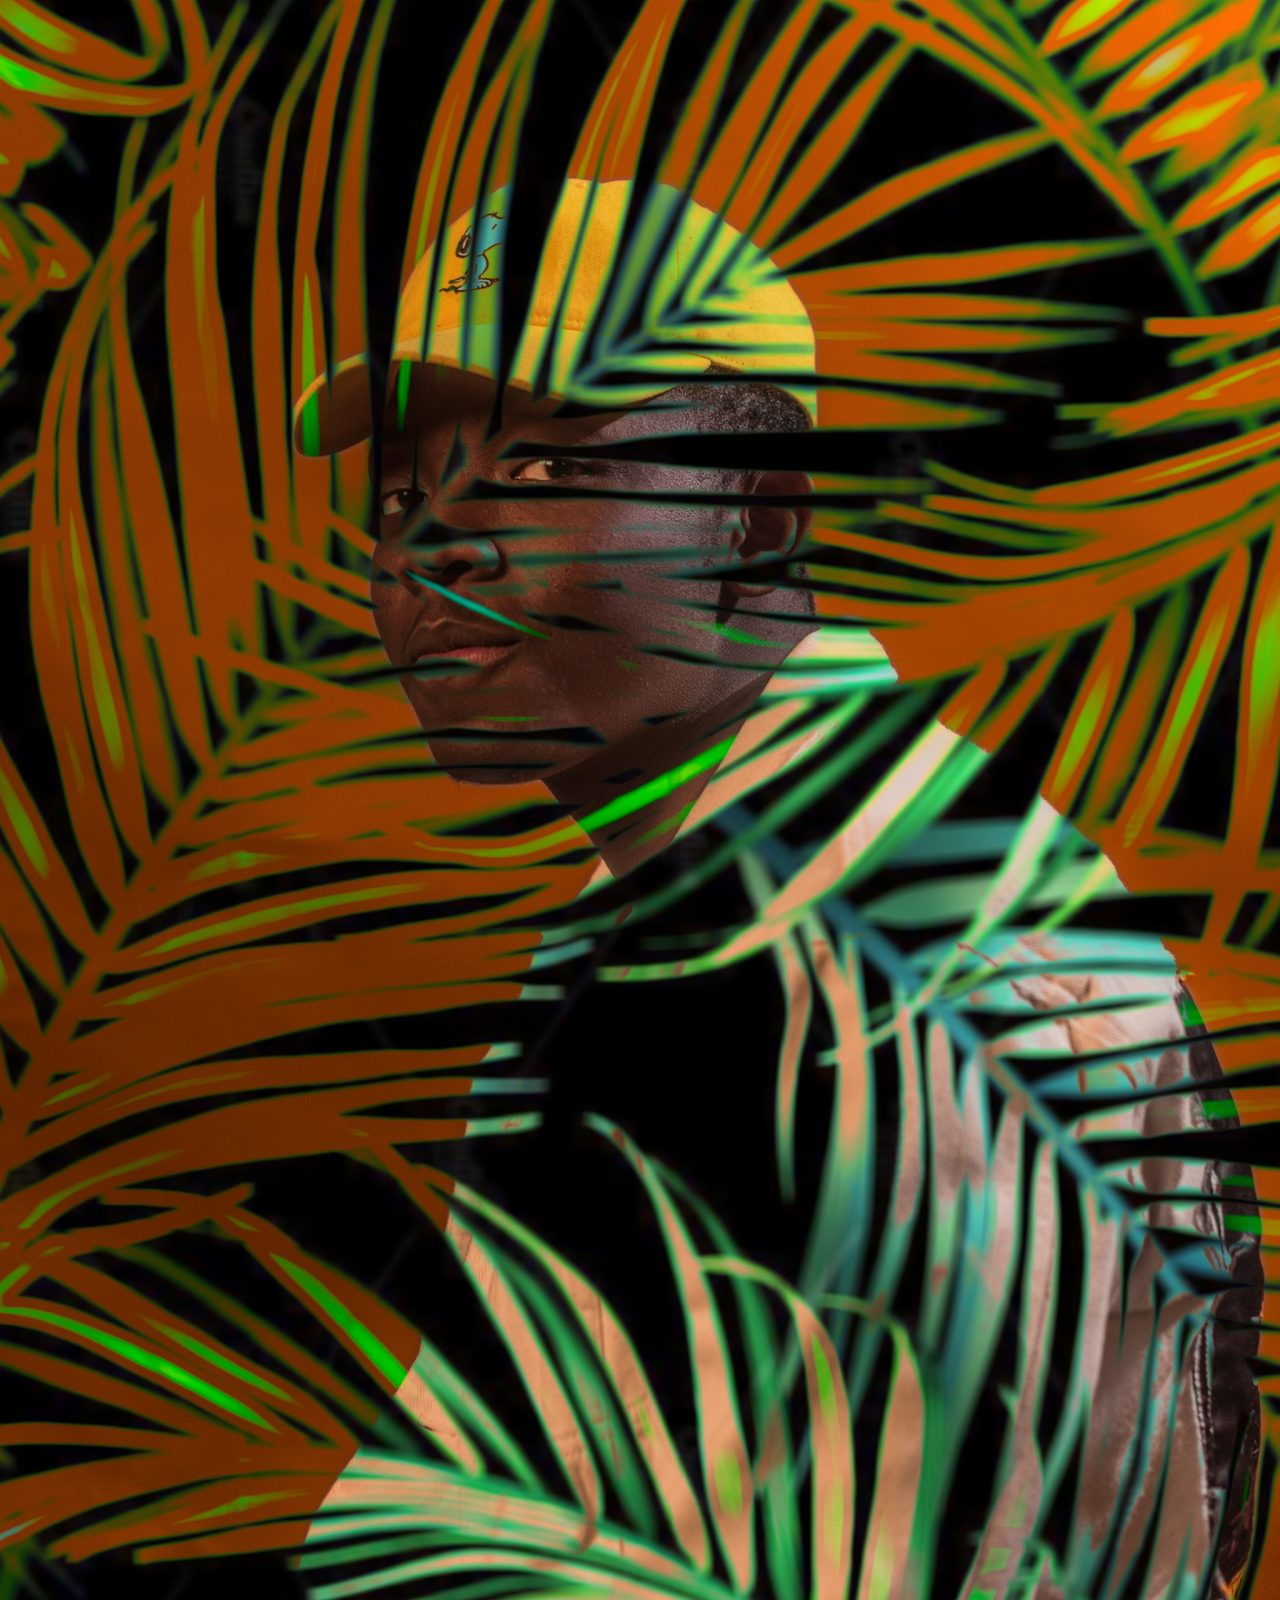 A photograph of a black man in a yellow baseball cap and a peach button down shirt against an orange background making eye contact with the camera and with the figure of a tropical plant with fronds overlaid across the whole image